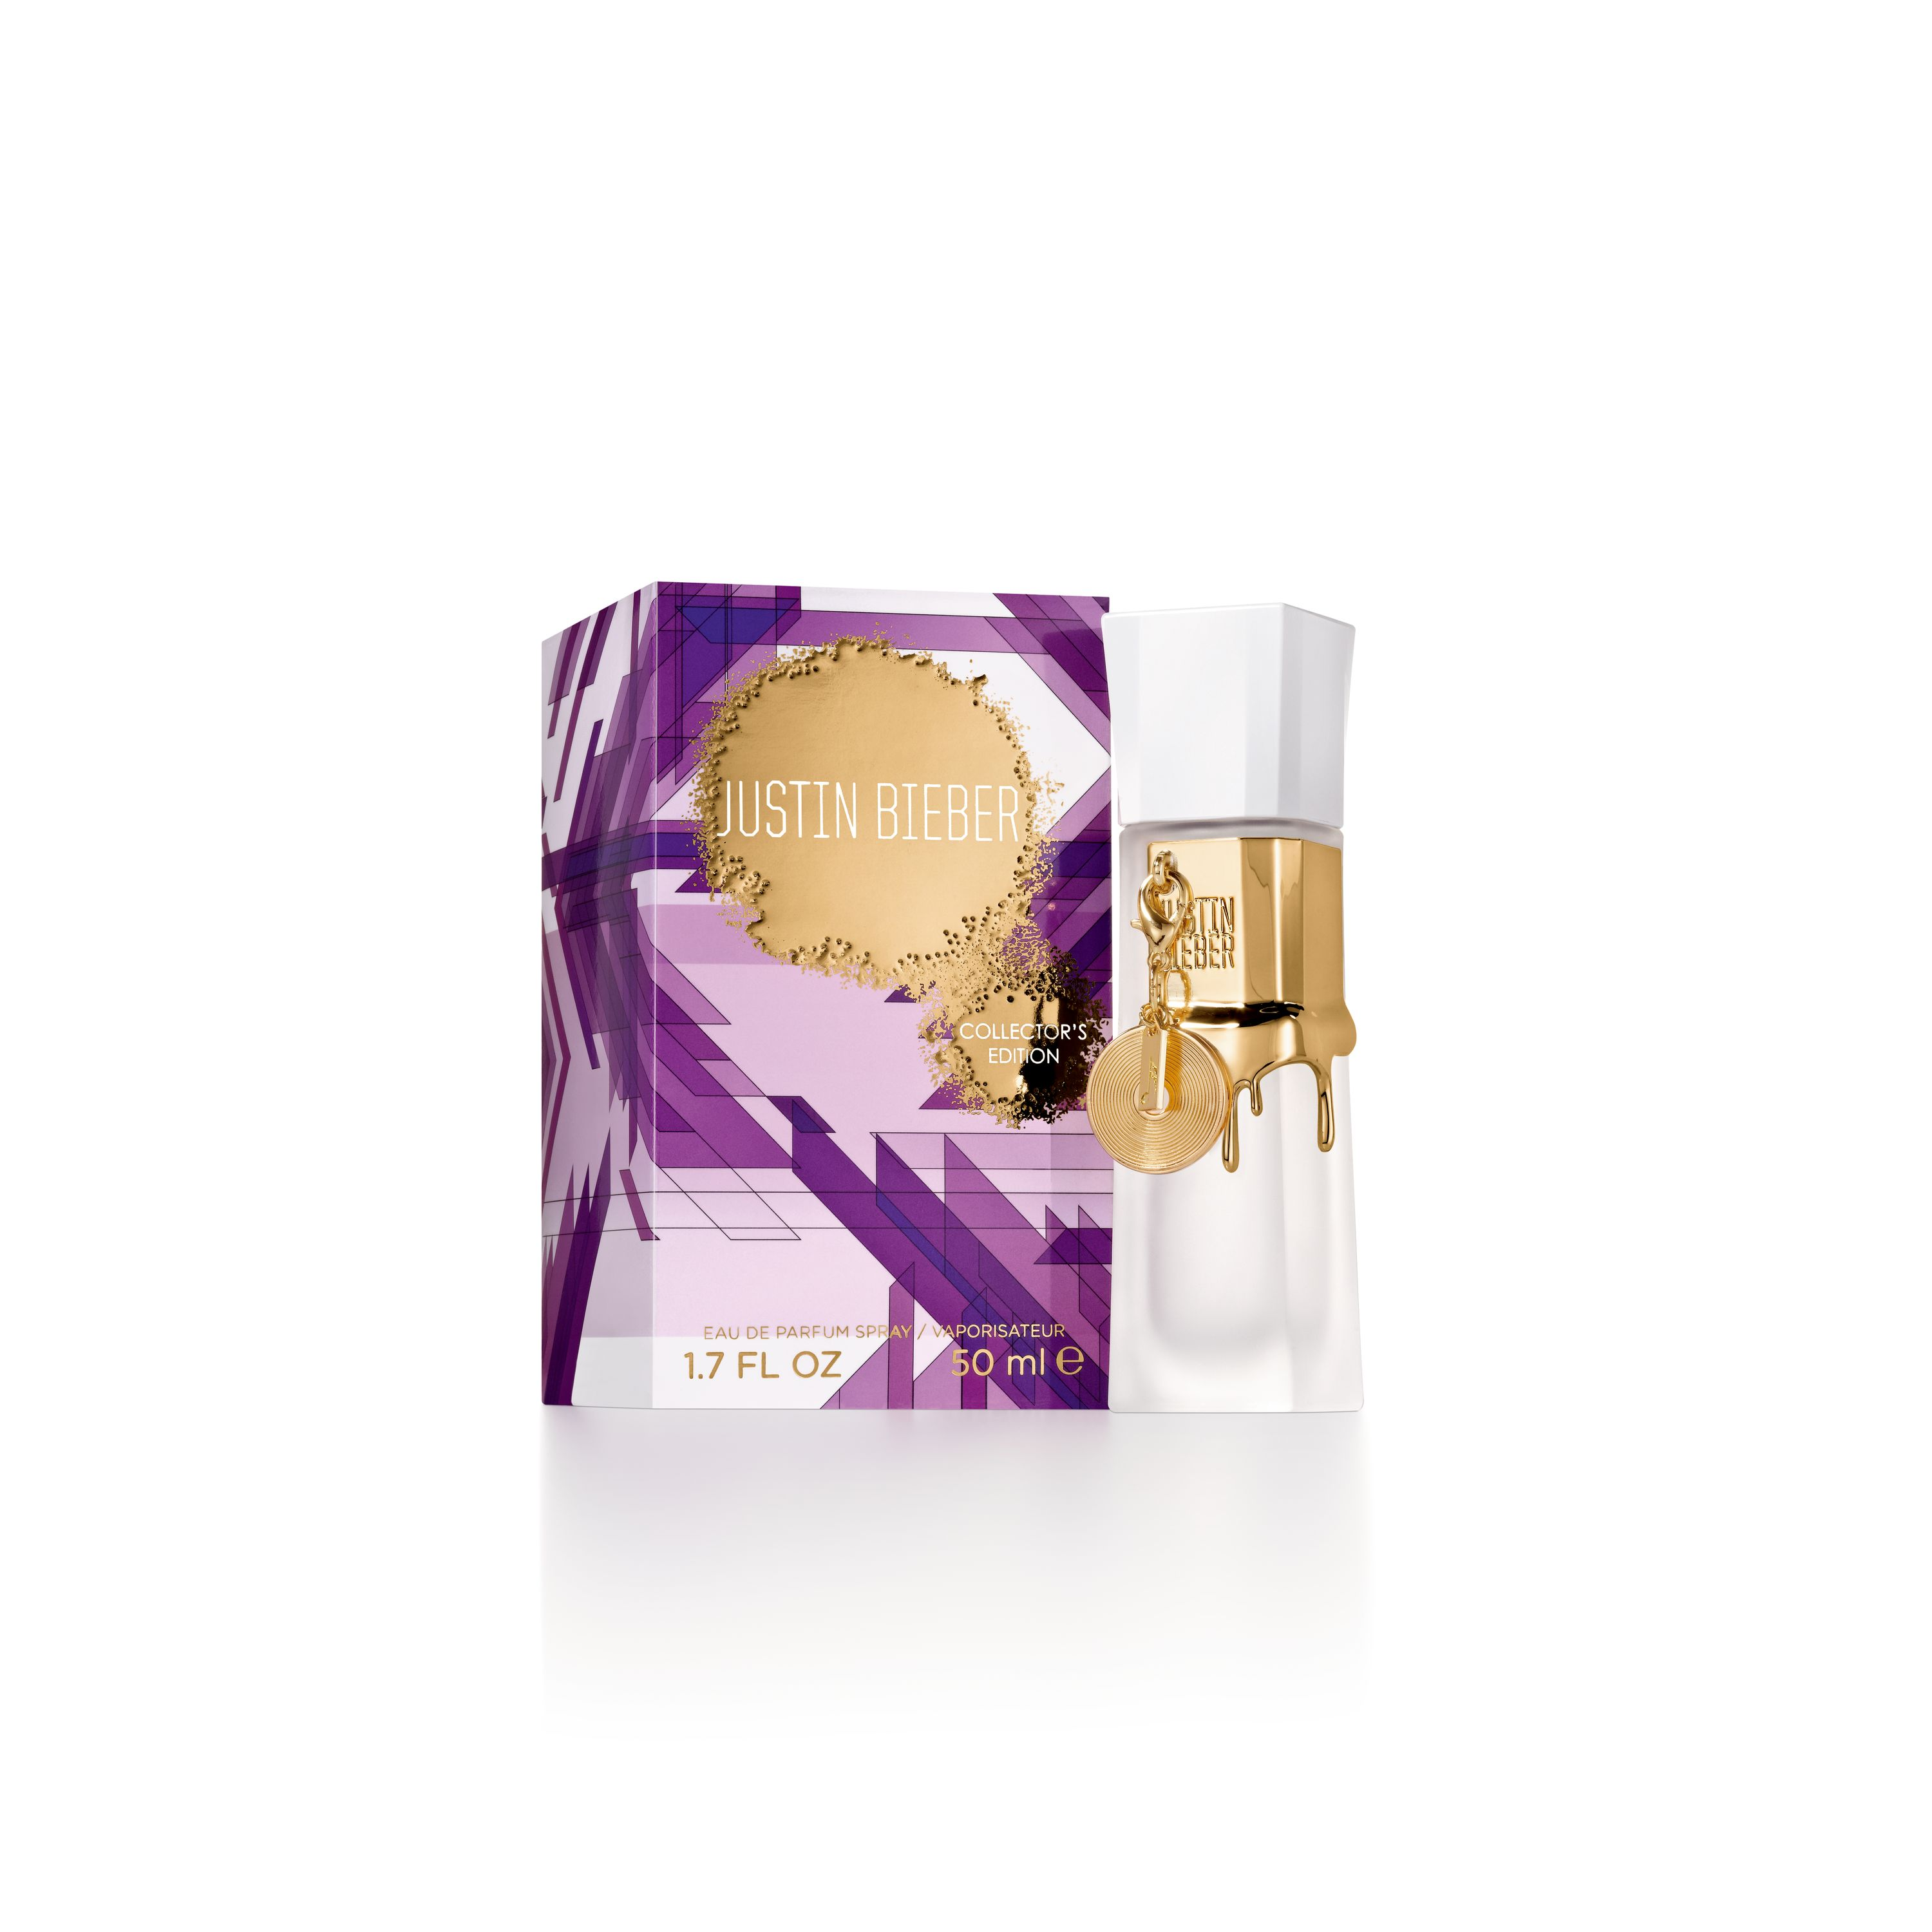 Justin Biebers Collectors Edition Eau De Parfum 50ml